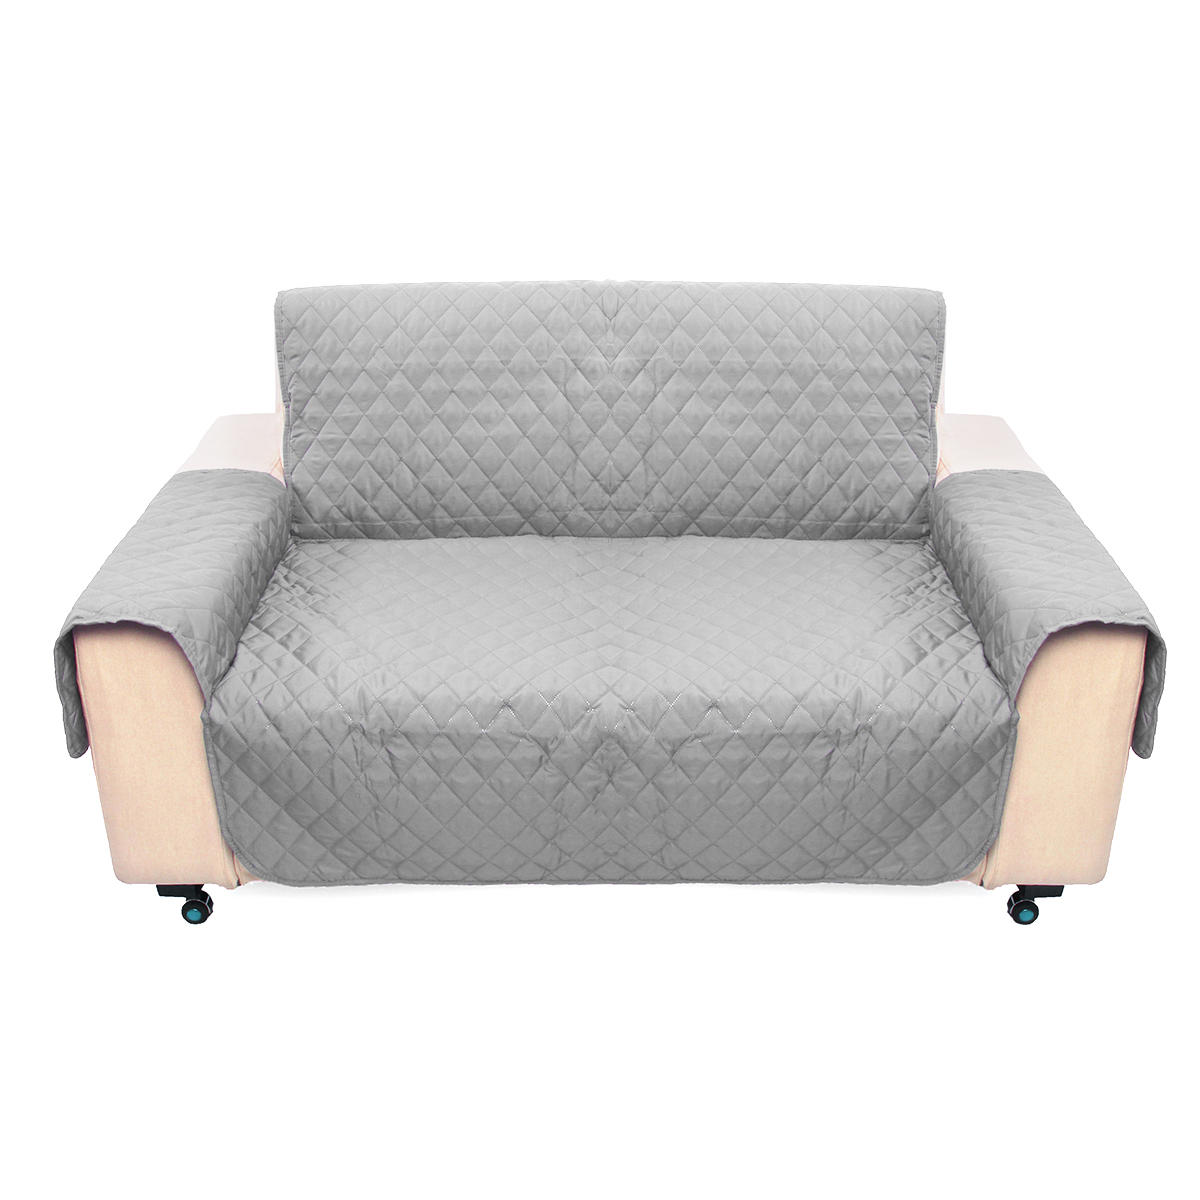 light gray 2 seater pet sofa couch protector cover removable w strap rh banggood com